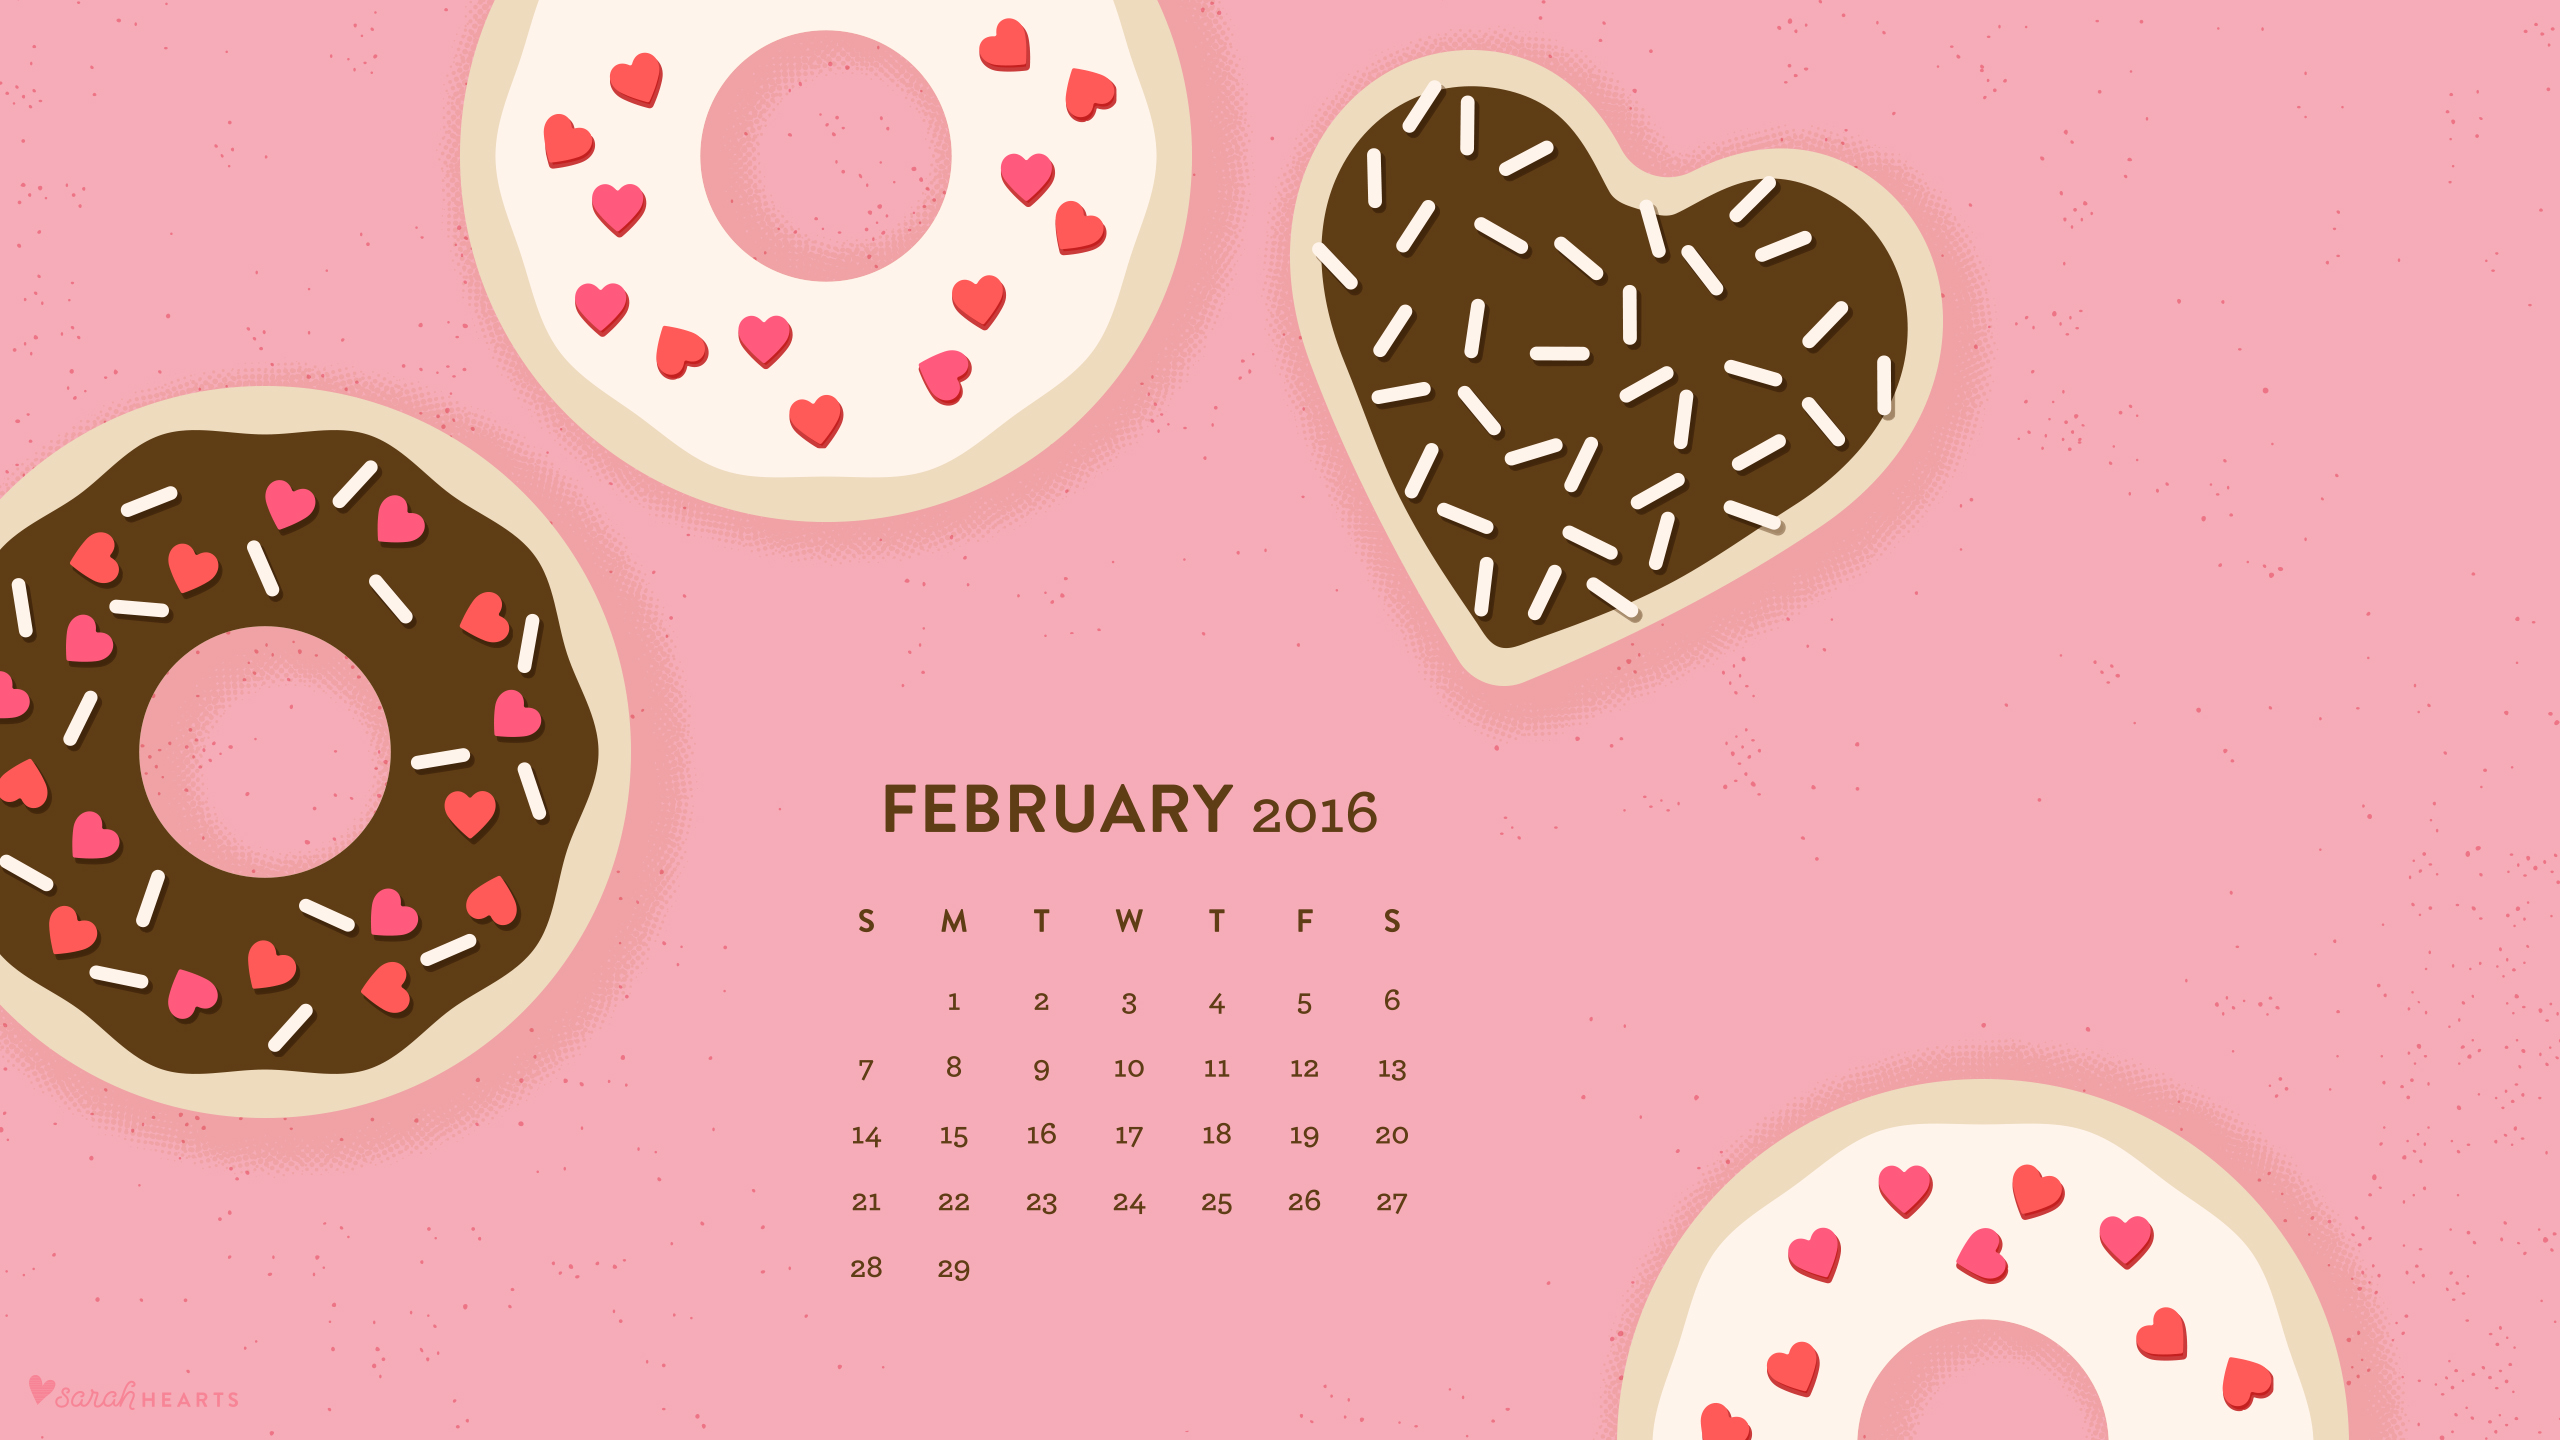 Cute Calendar Wallpaper : February calendar wallpaper sarah hearts